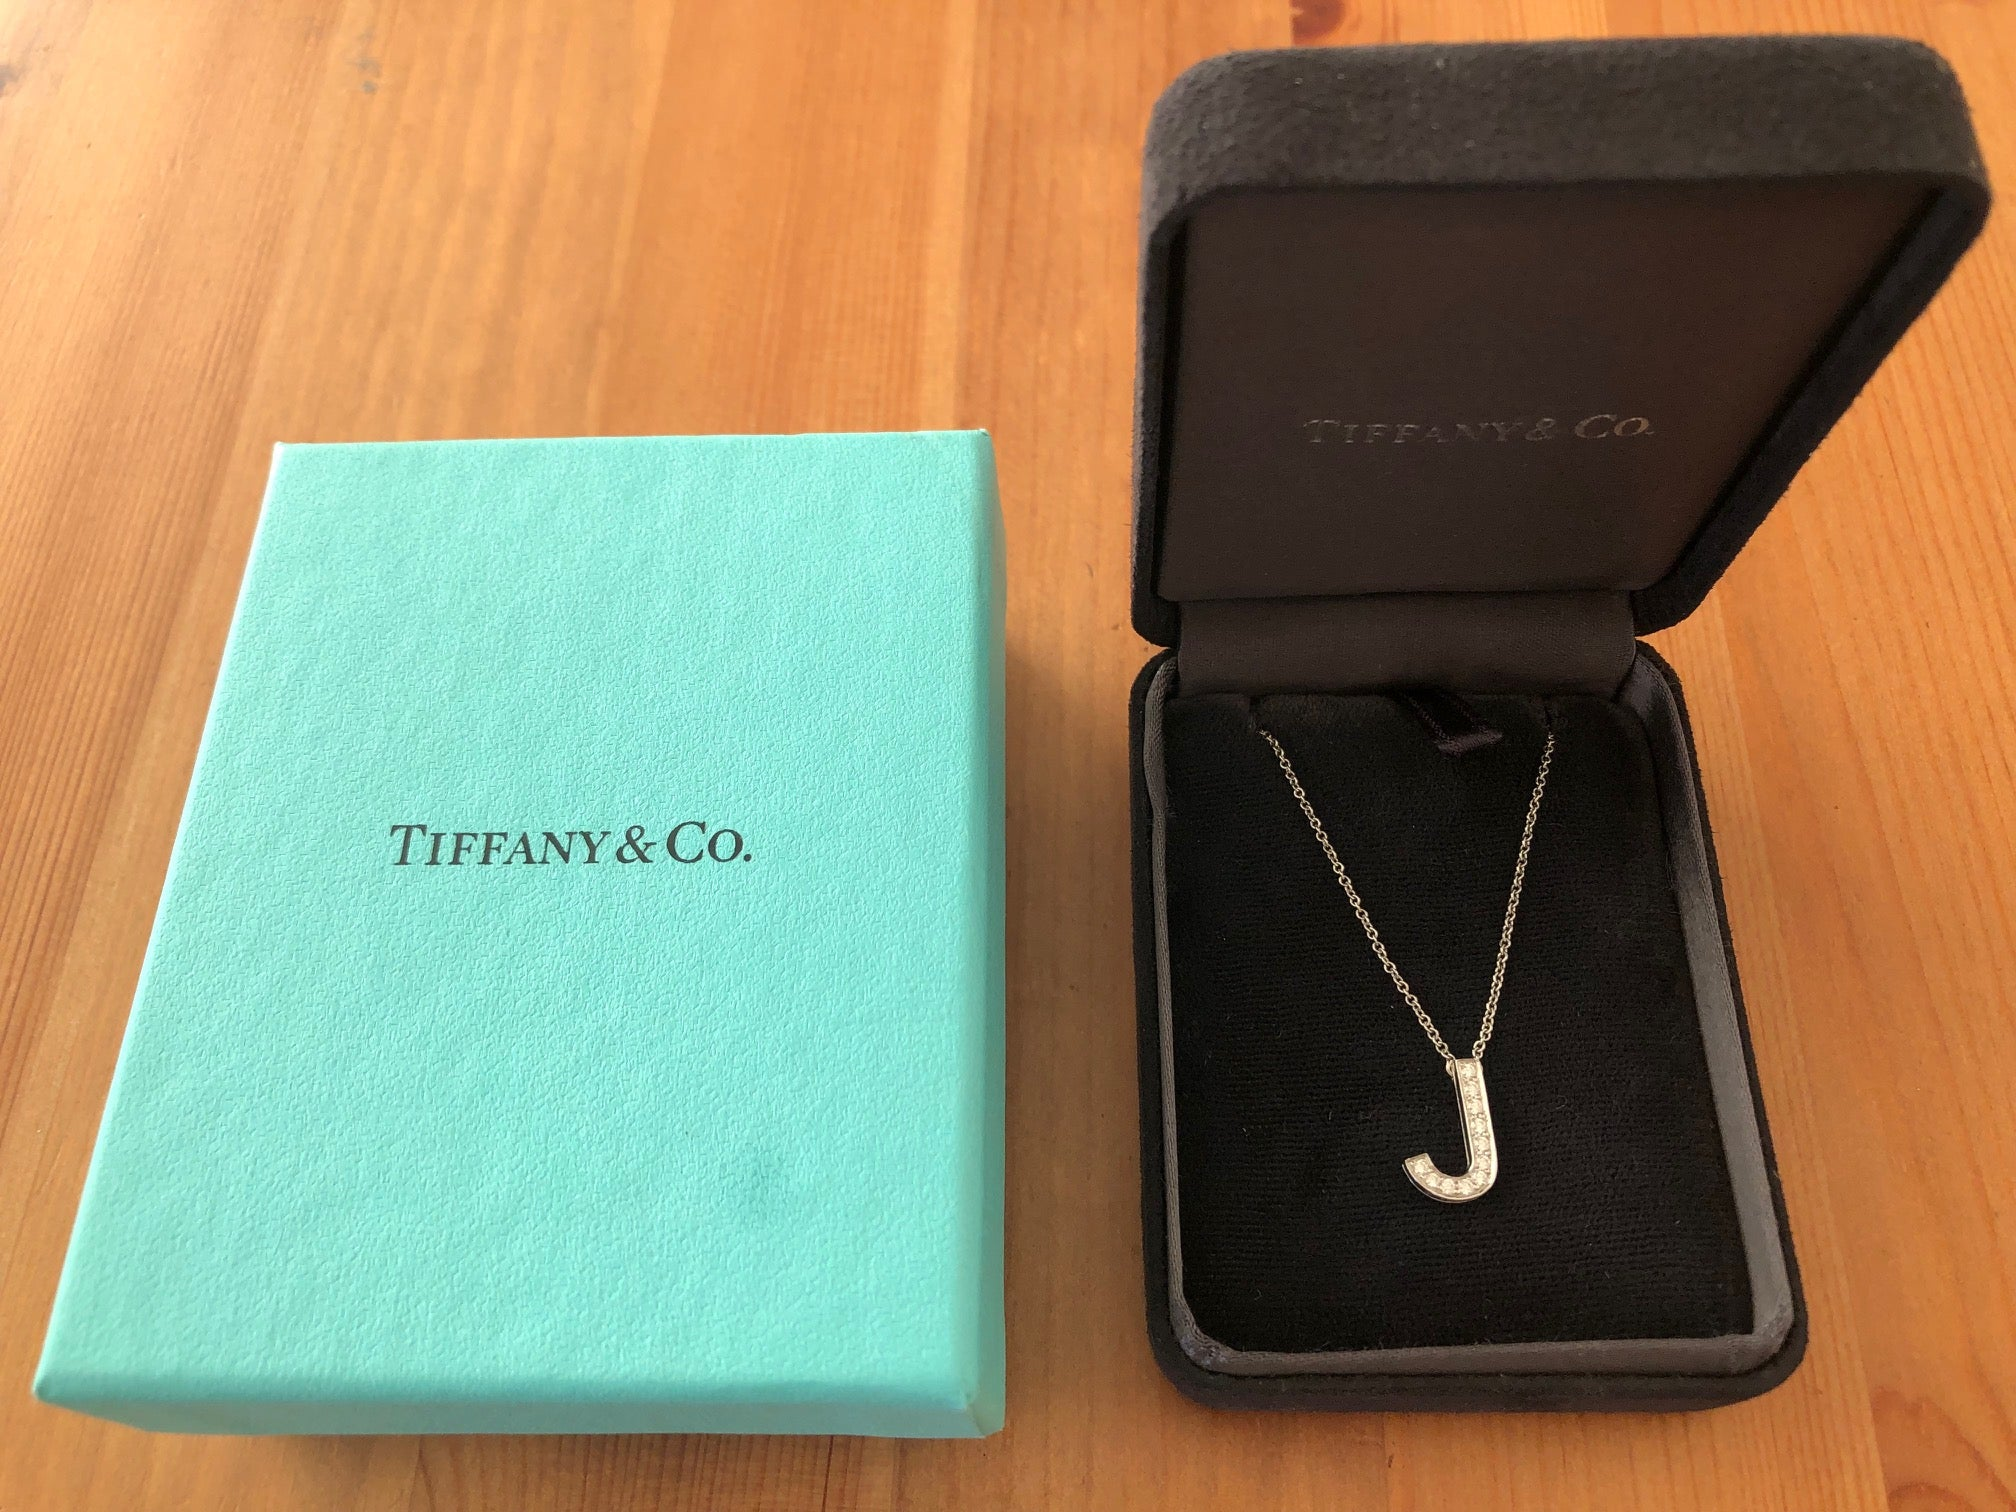 Tiffany & Co. 0.11tcw Diamond and Platinum 'J' Alphabet Necklace Receipt and Box